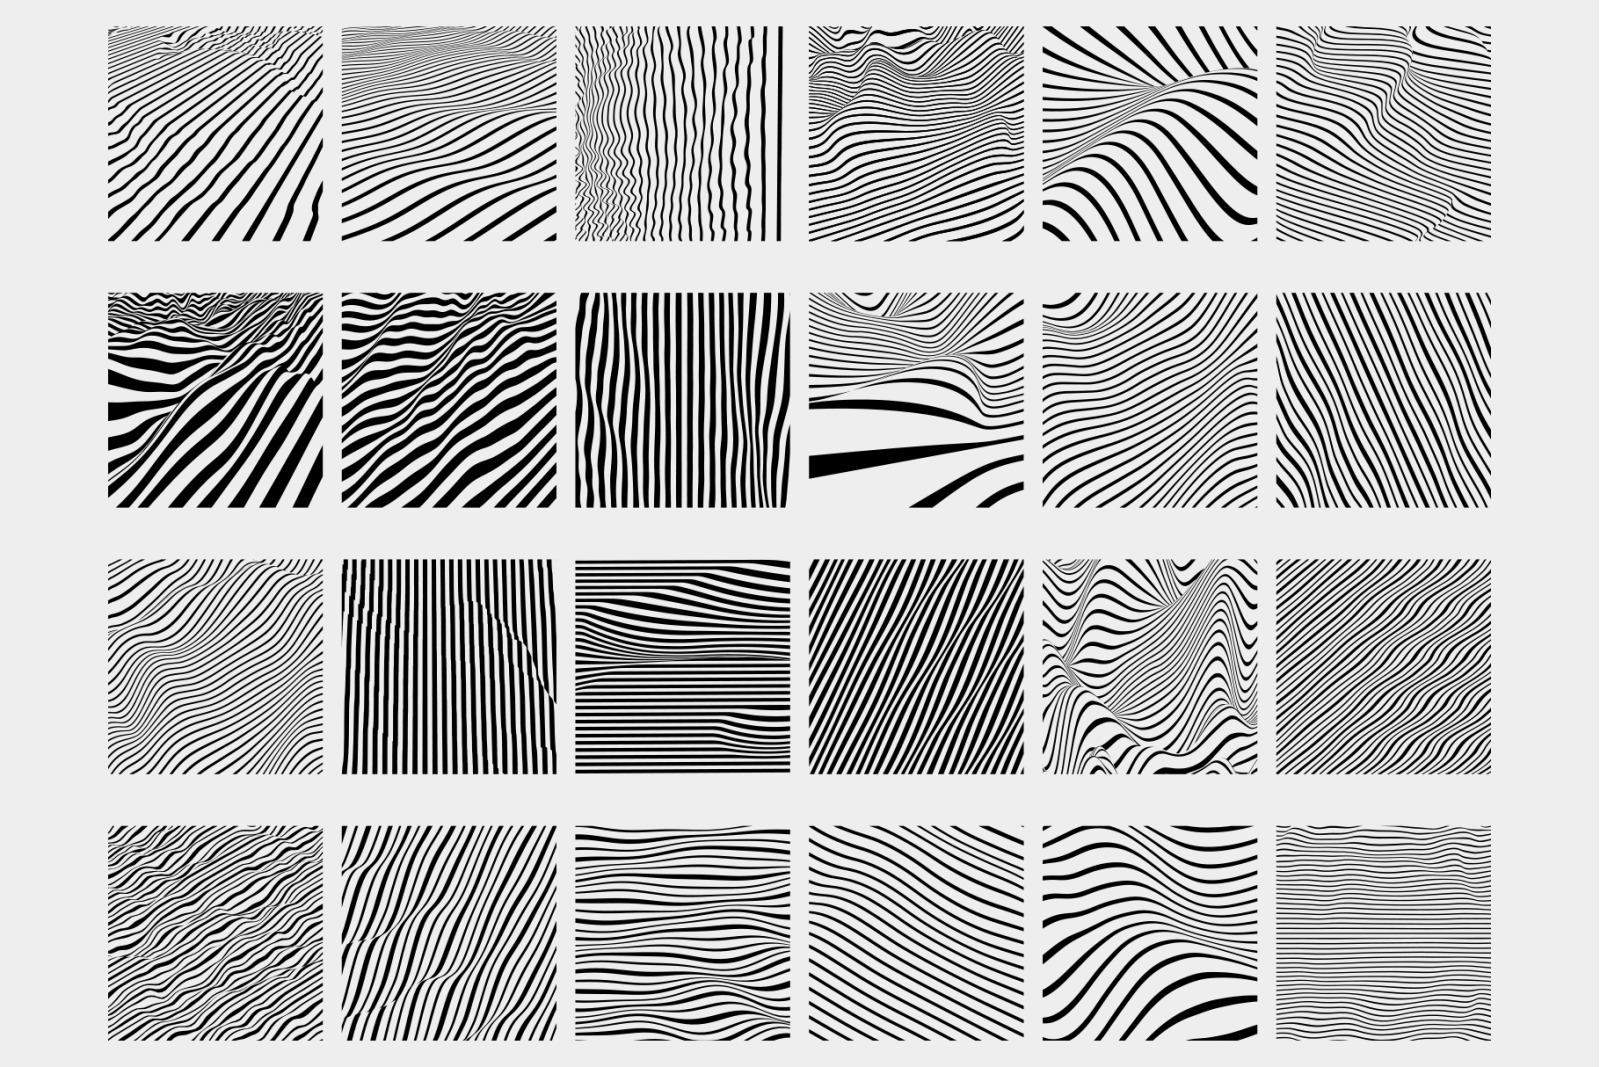 Lined : 24 Vector Patterns